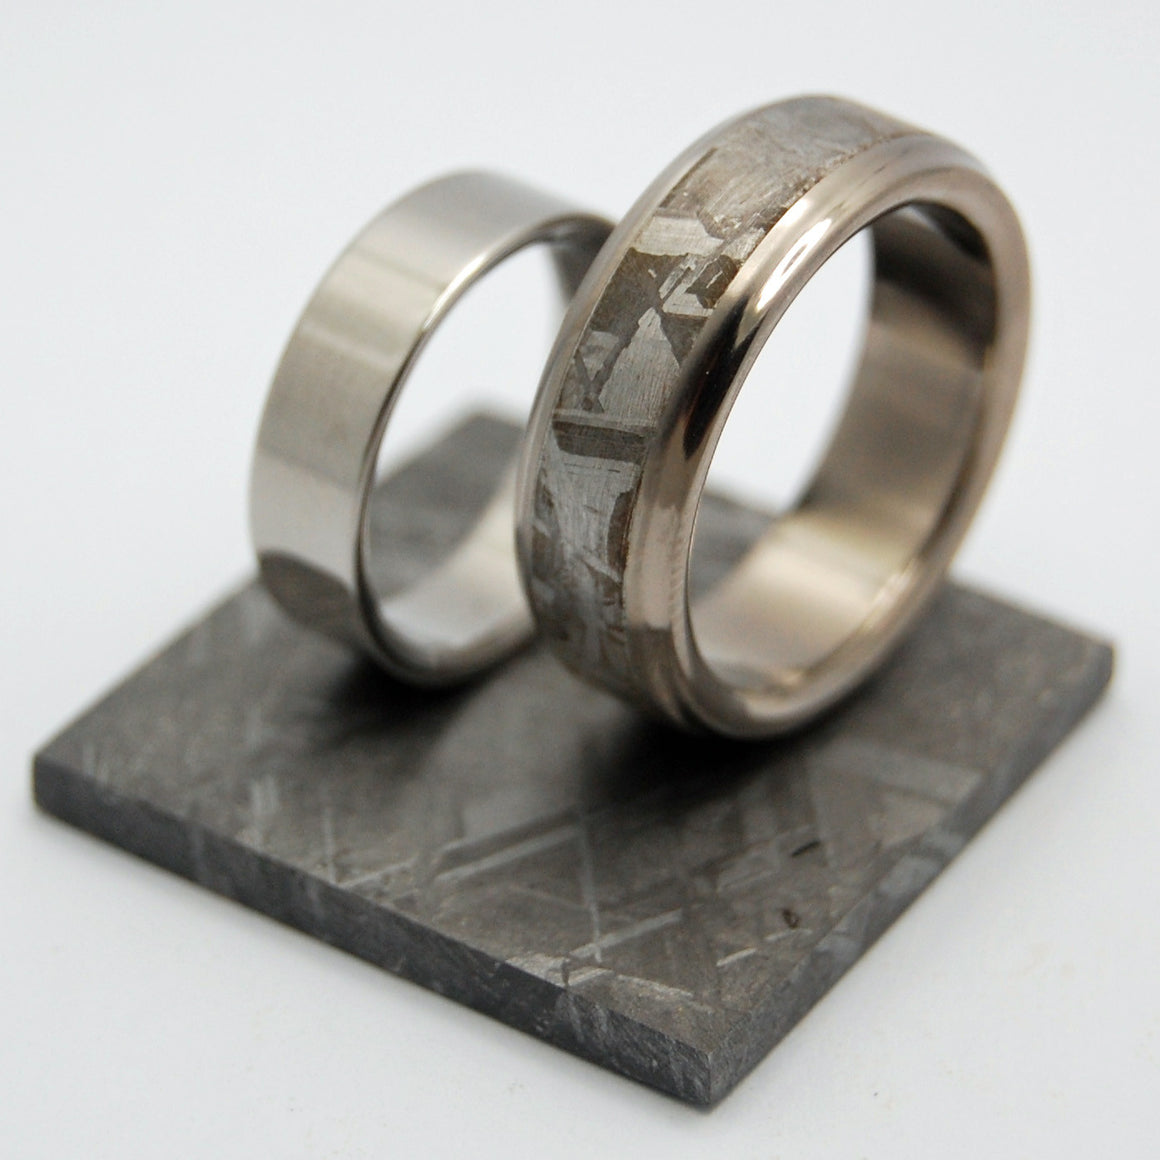 FALLING STAR SUPER STEEL | Meteorite & Steel Wedding Rings set - Minter and Richter Designs